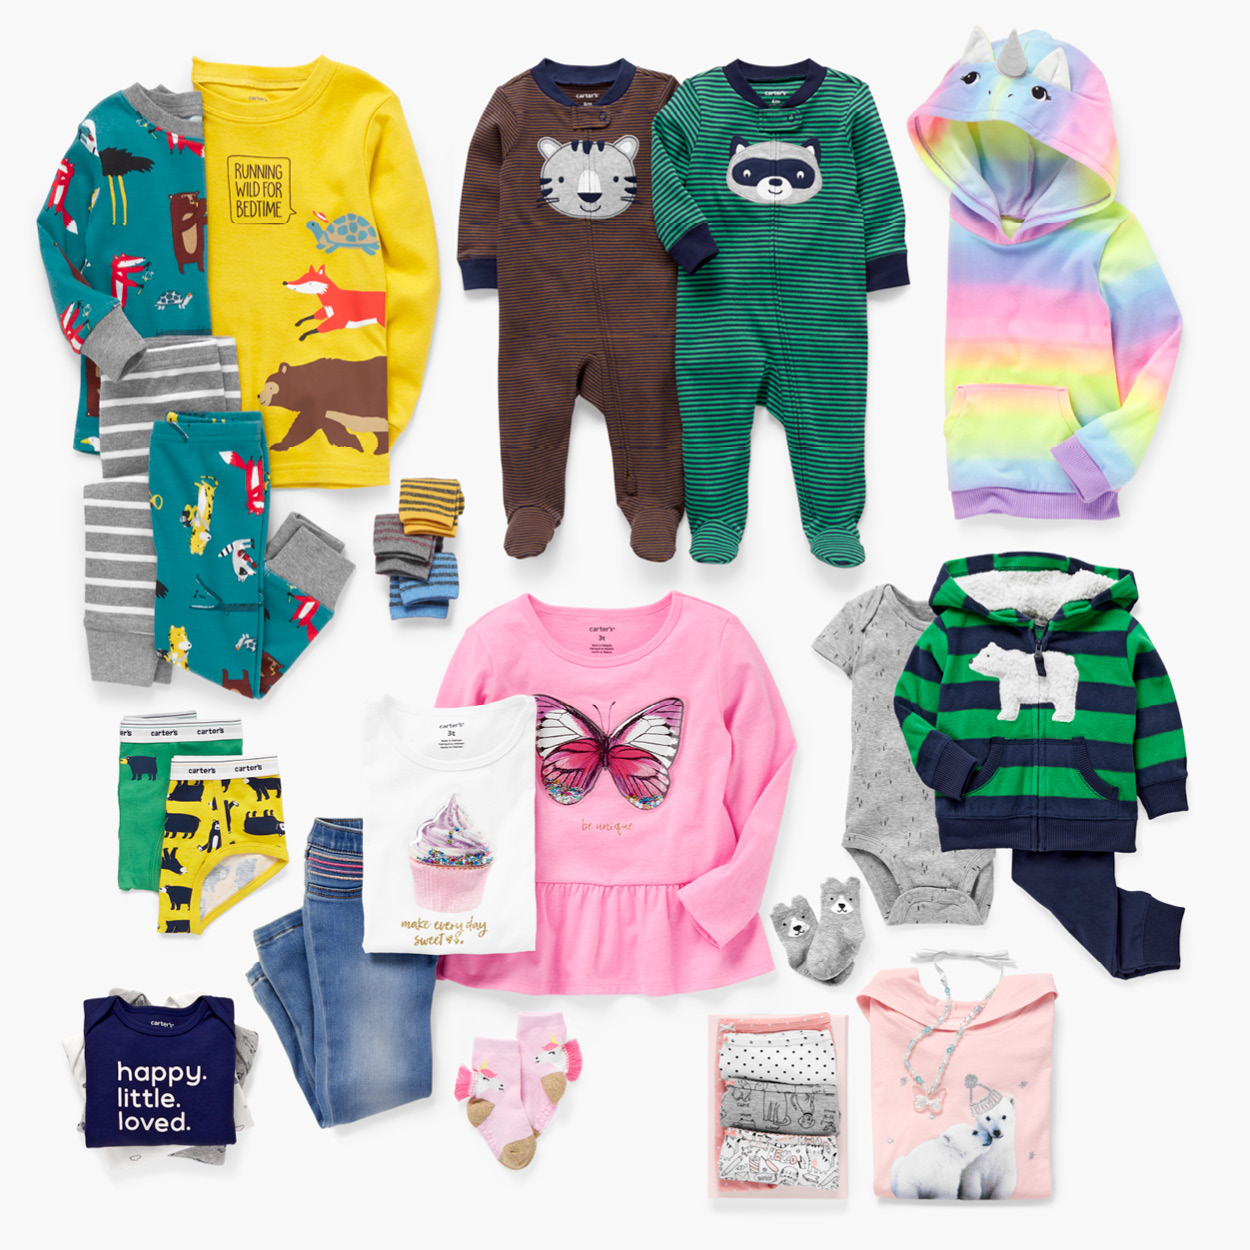 Pants Toddler Girls Size 4T Pre Owned Shirts Hoodies and More- You Pick!